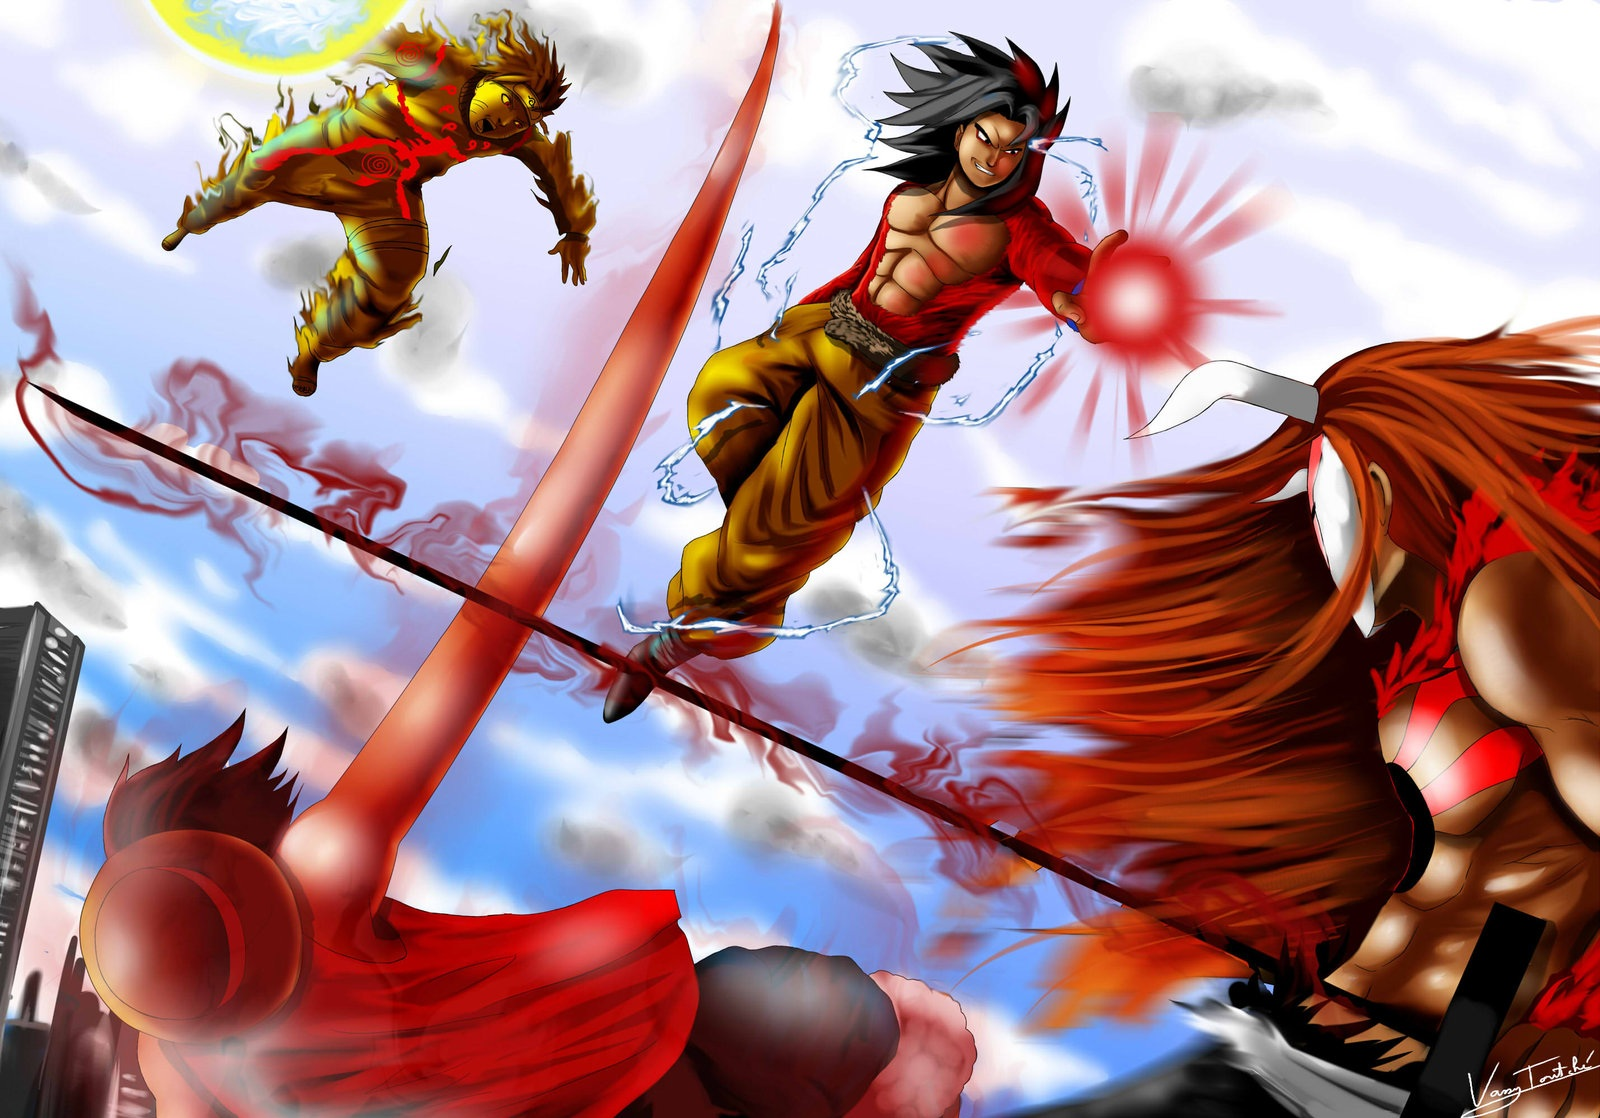 Goku VS Naruto Luffy Ichigo wallpaper   ForWallpapercom 1600x1118